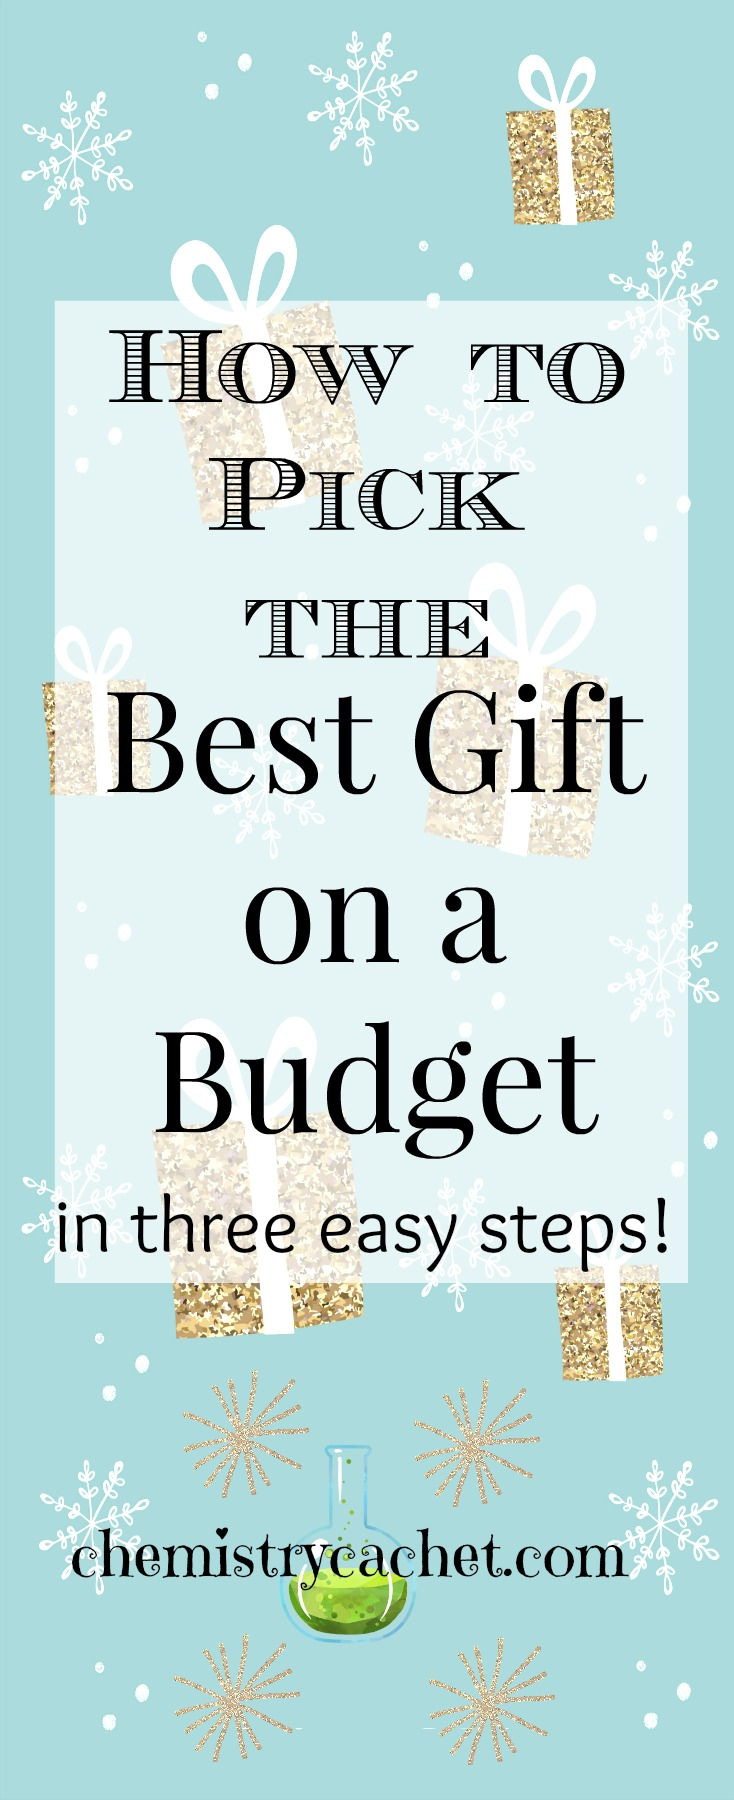 How to Pick the Best Gift on a Budget with Three Easy Steps on chemistrycachet.com